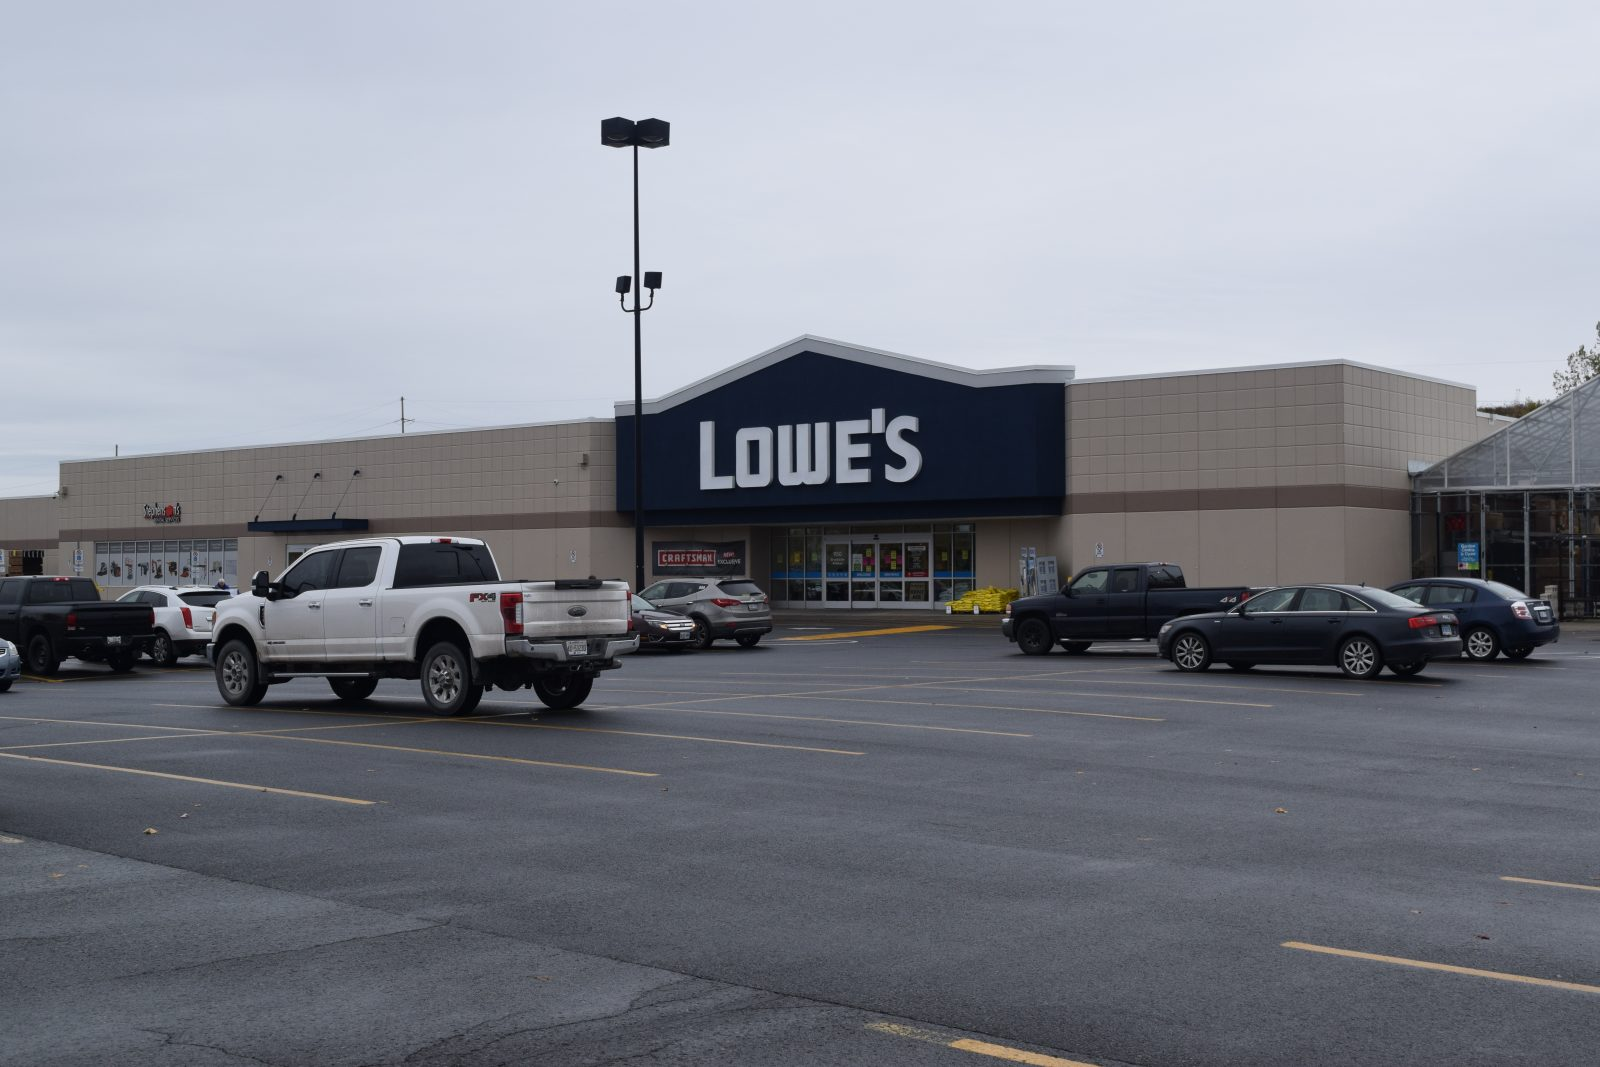 Cornwall Lowes not one of 31 Canadian stores slated for closure